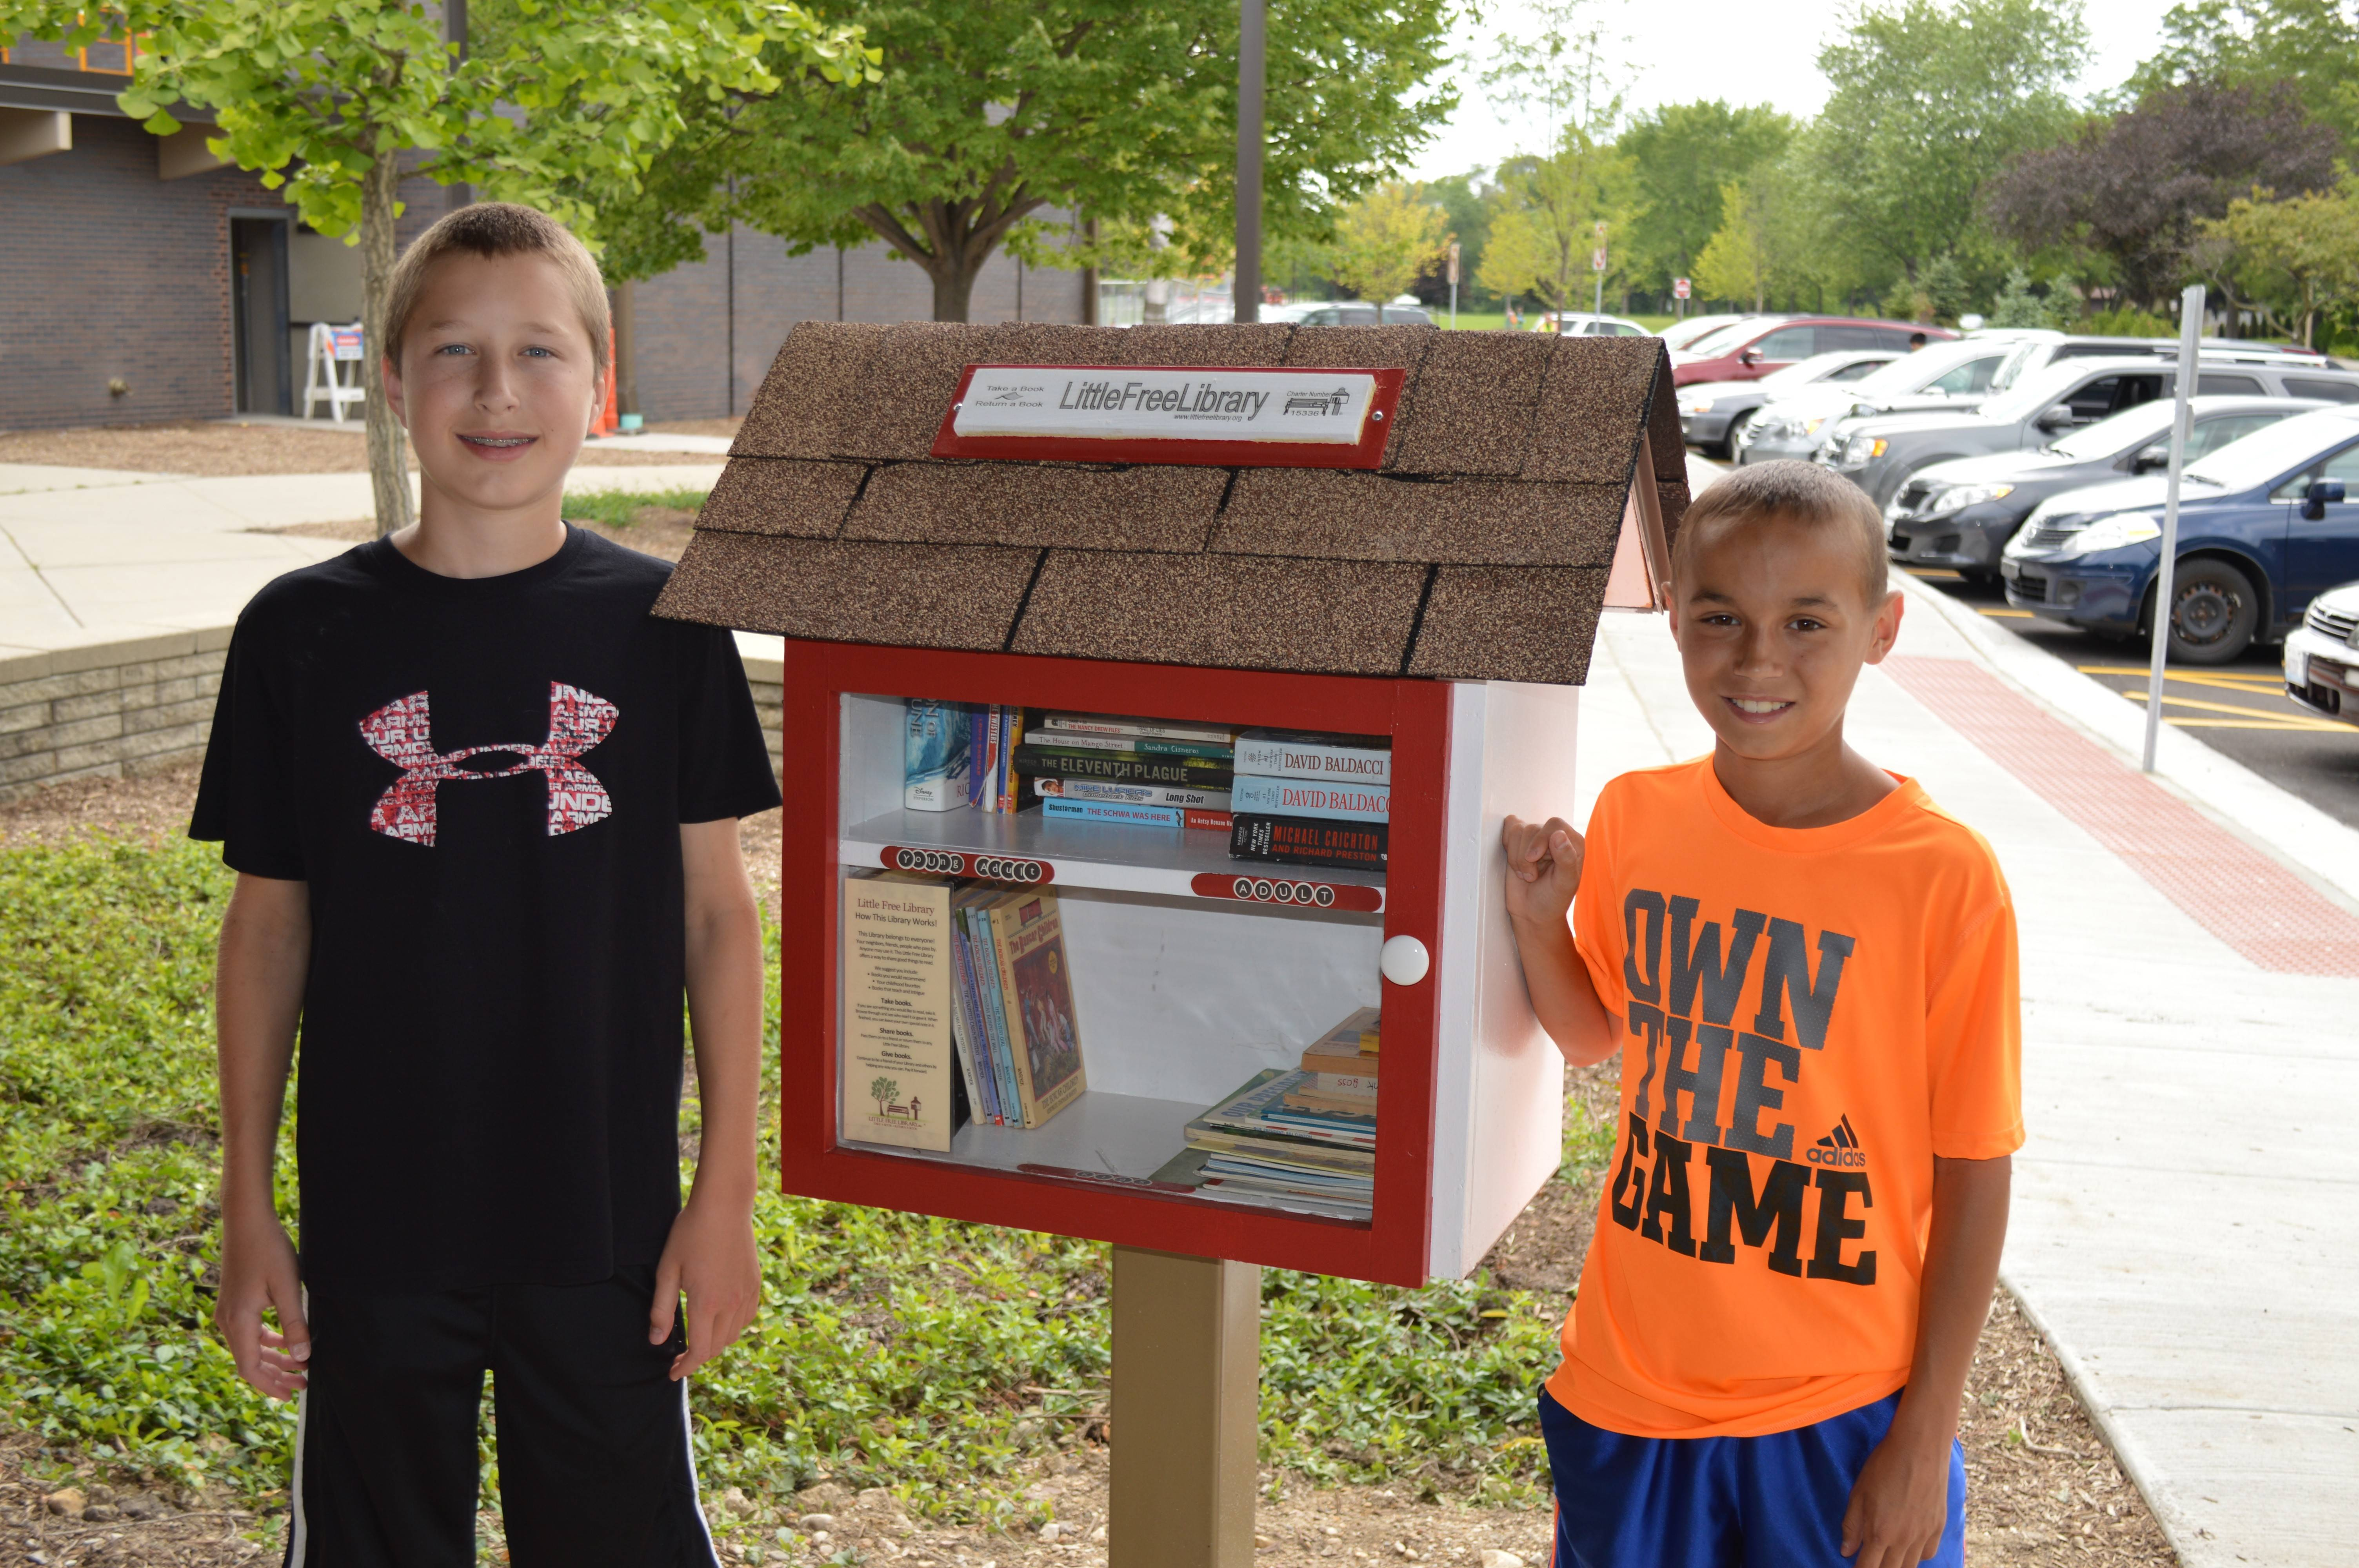 Little Free Library debuts at Arlington Hts. community center